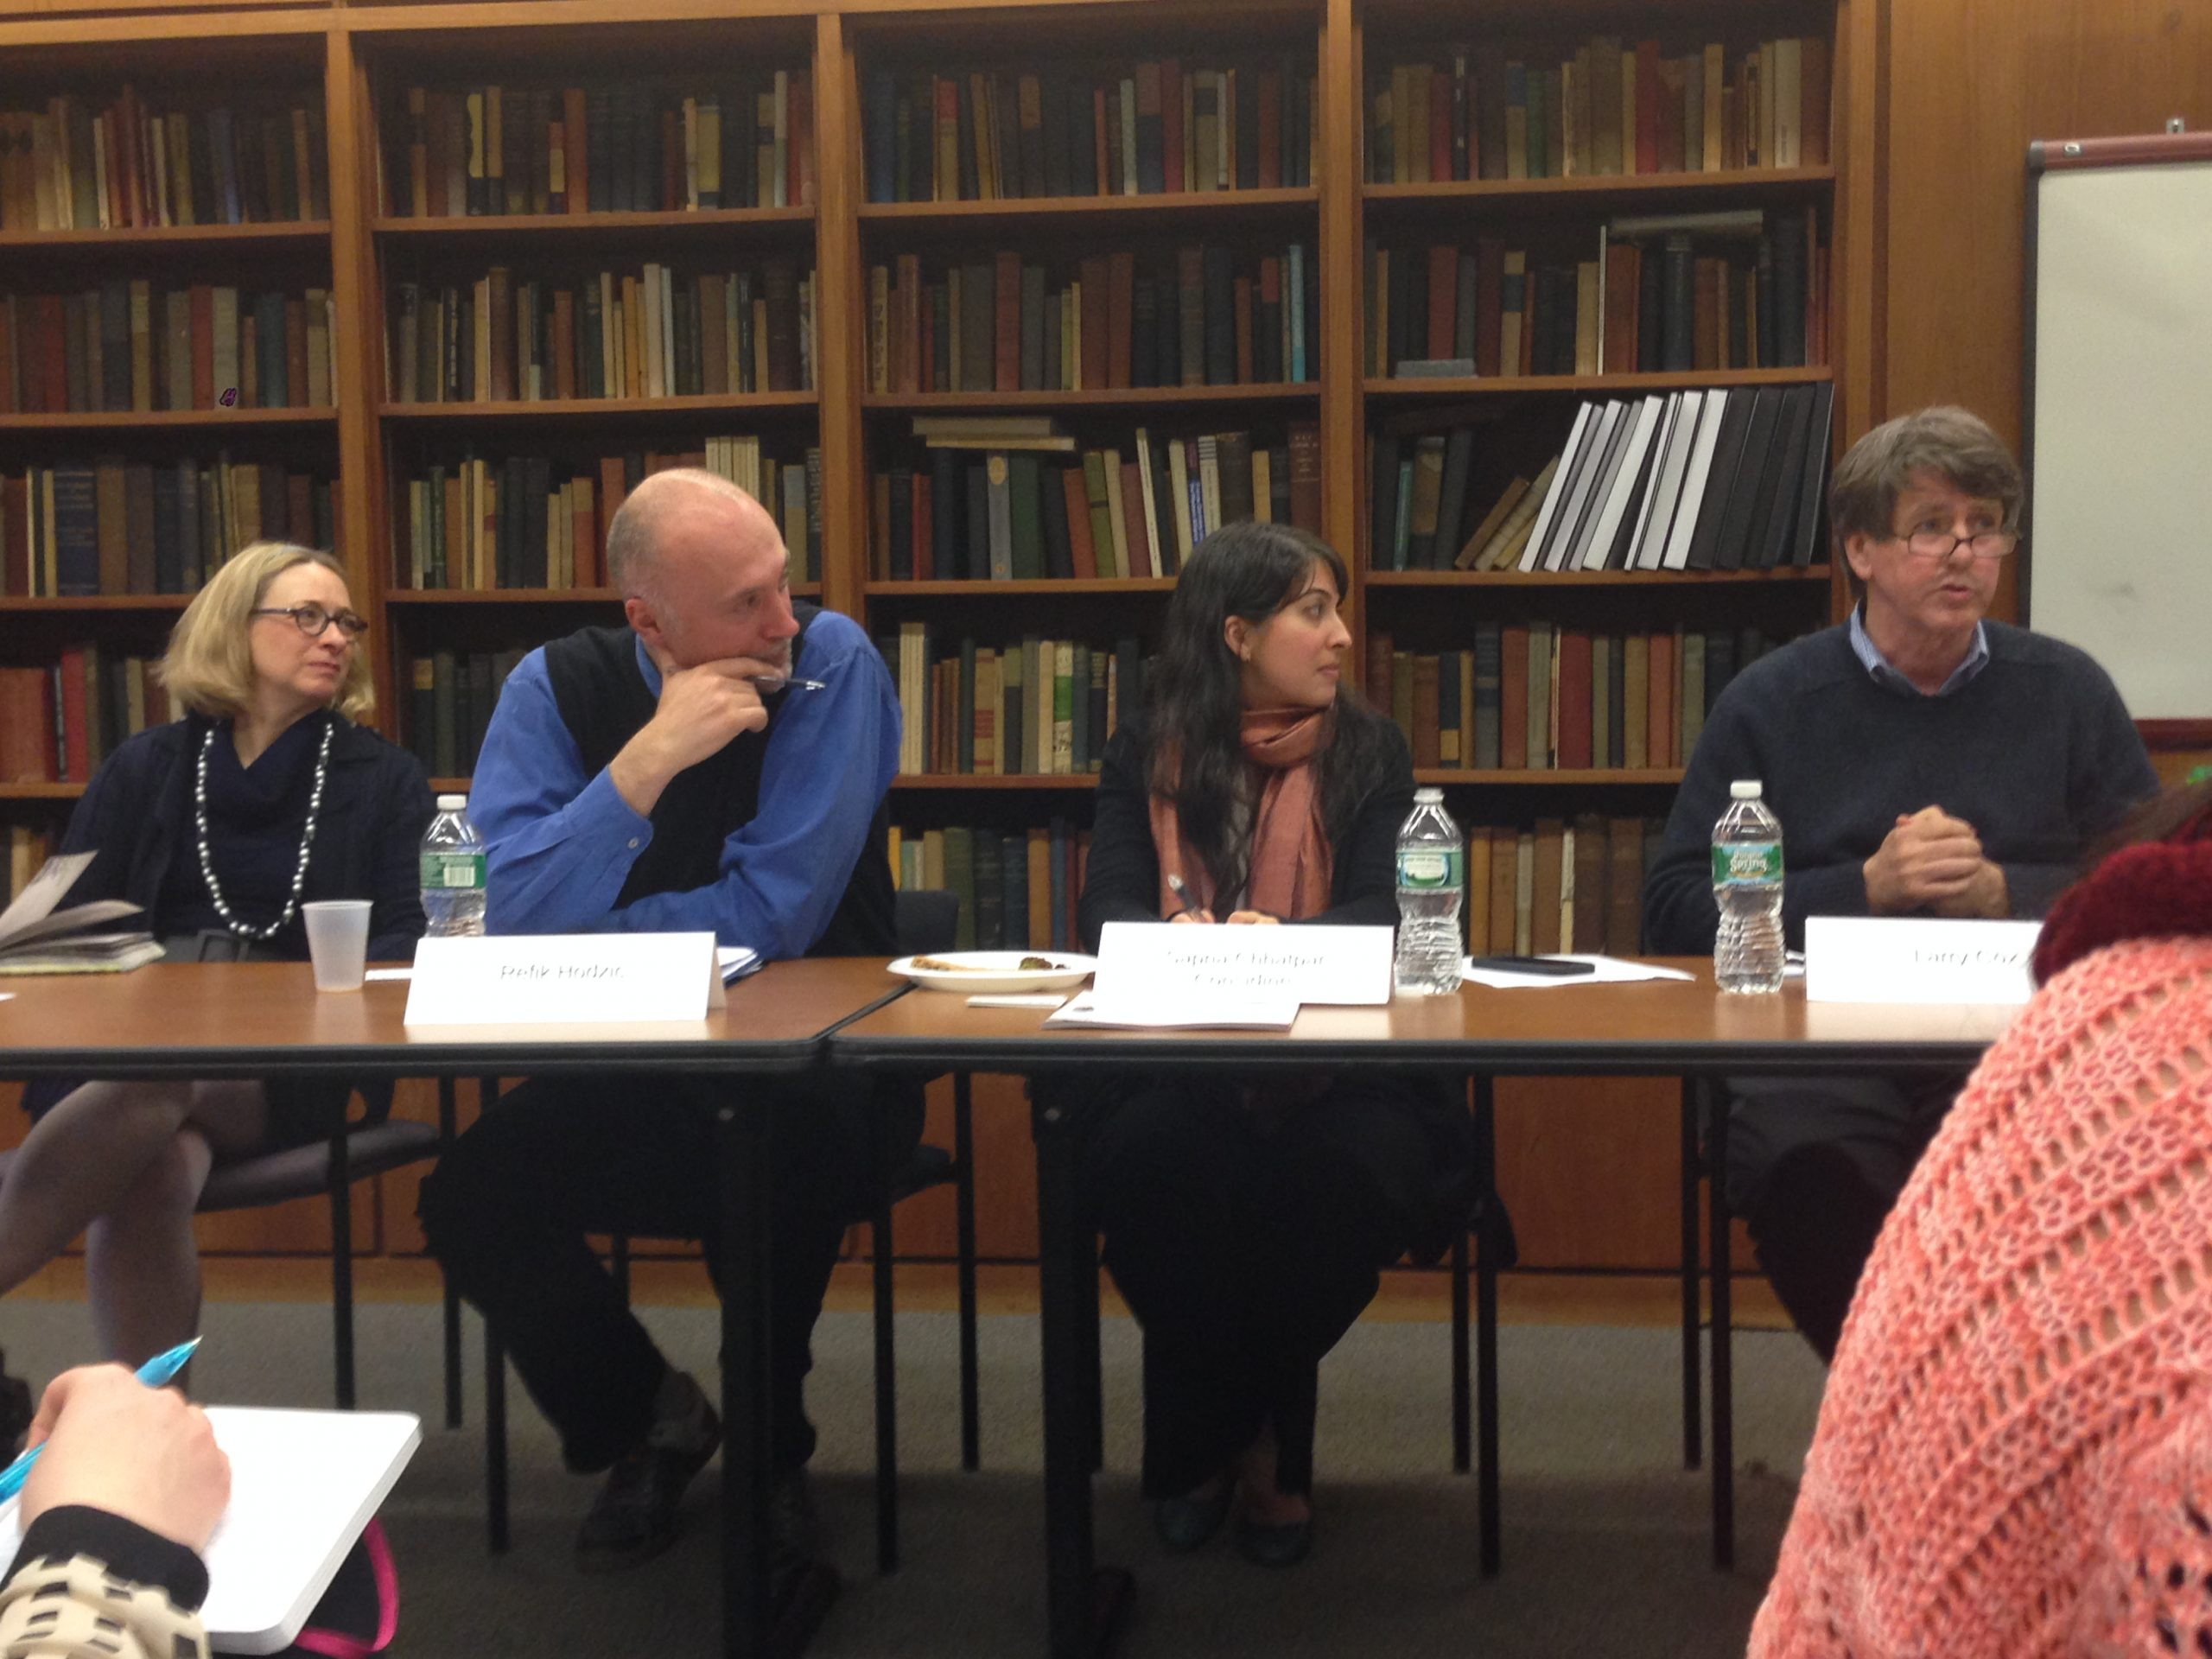 """""""What is your vision of human rights work?"""" -Careers in Human Rights Panel Discussion"""